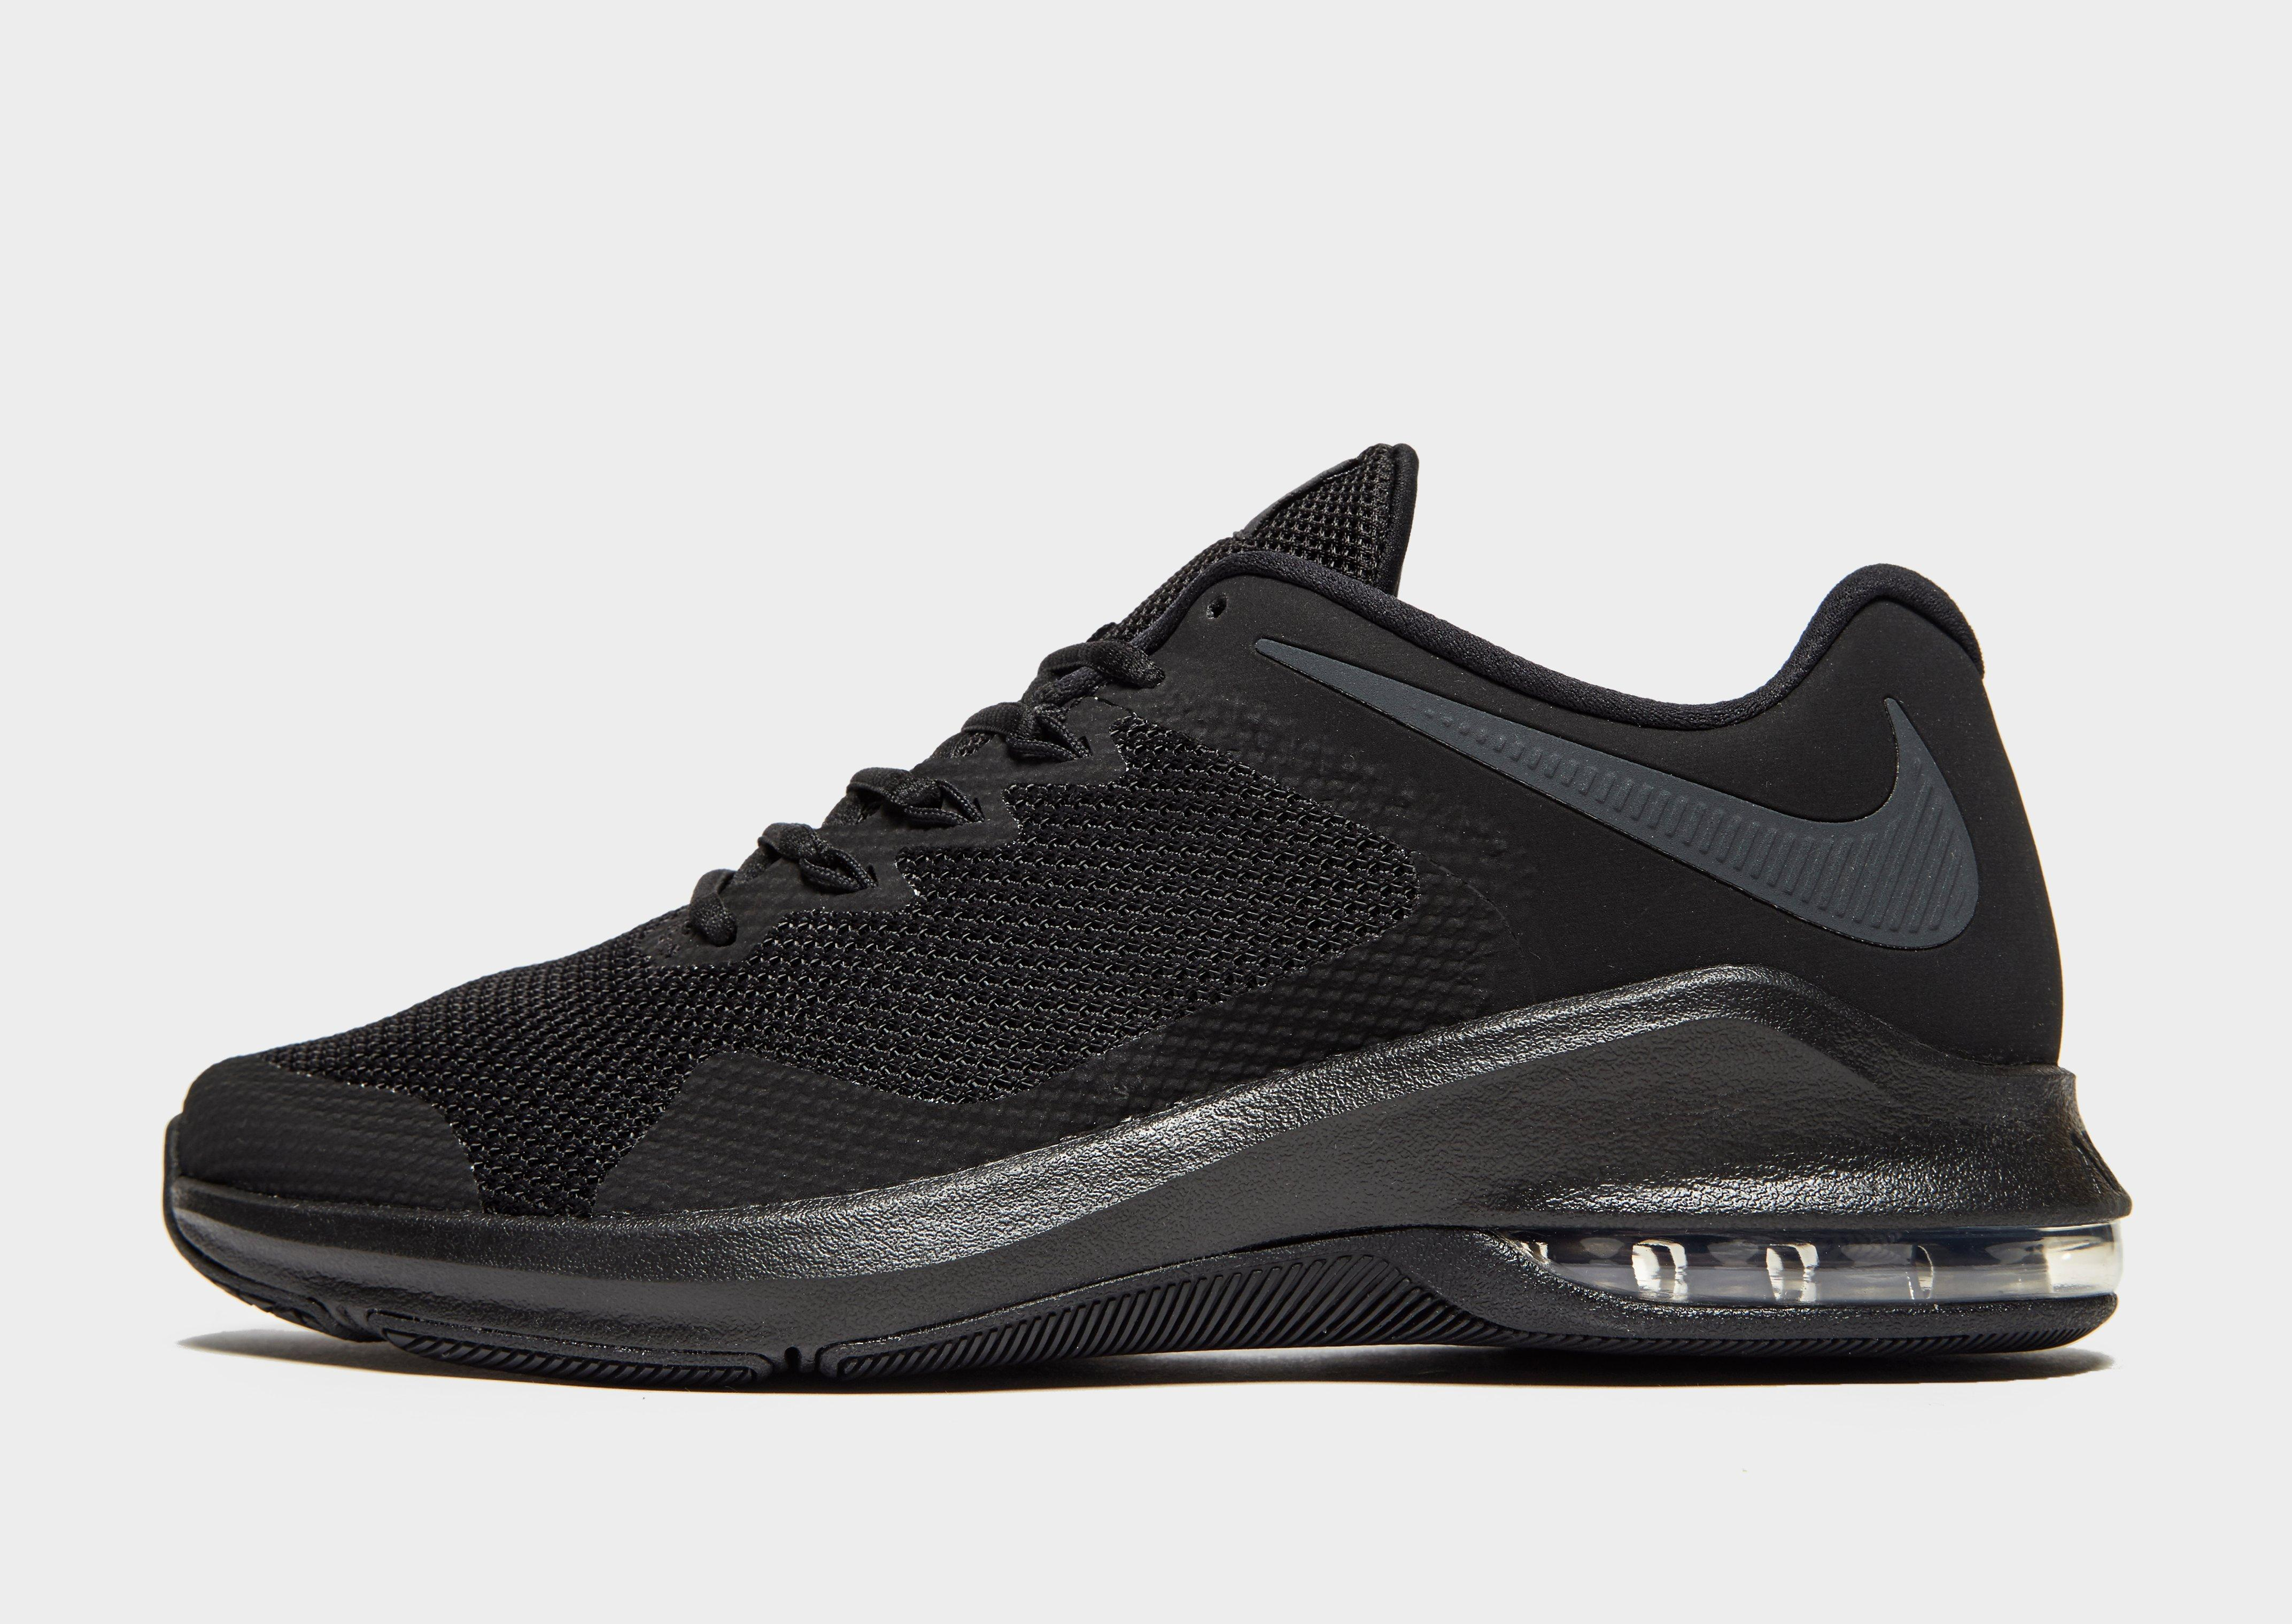 premium selection 5a01f a4fbb Lyst - Nike Air Max Alpha Trainer in Black for Men